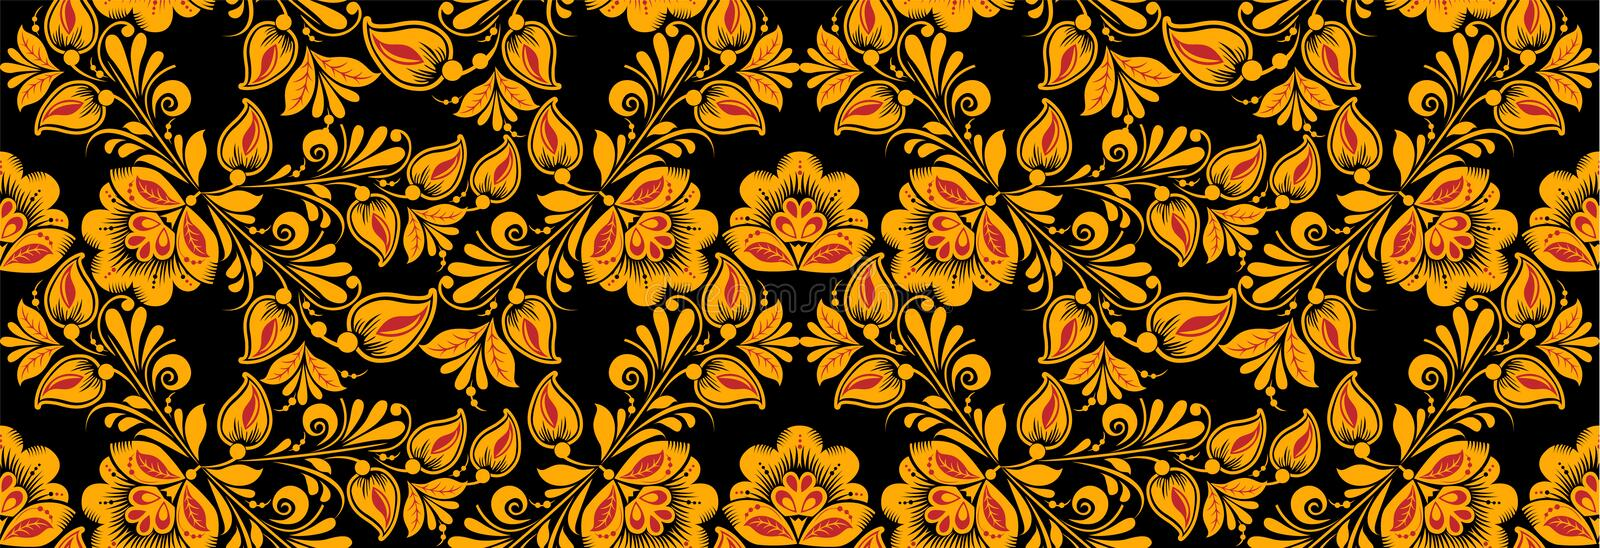 Floral seamless pattern, hohloma drawing style royalty free illustration